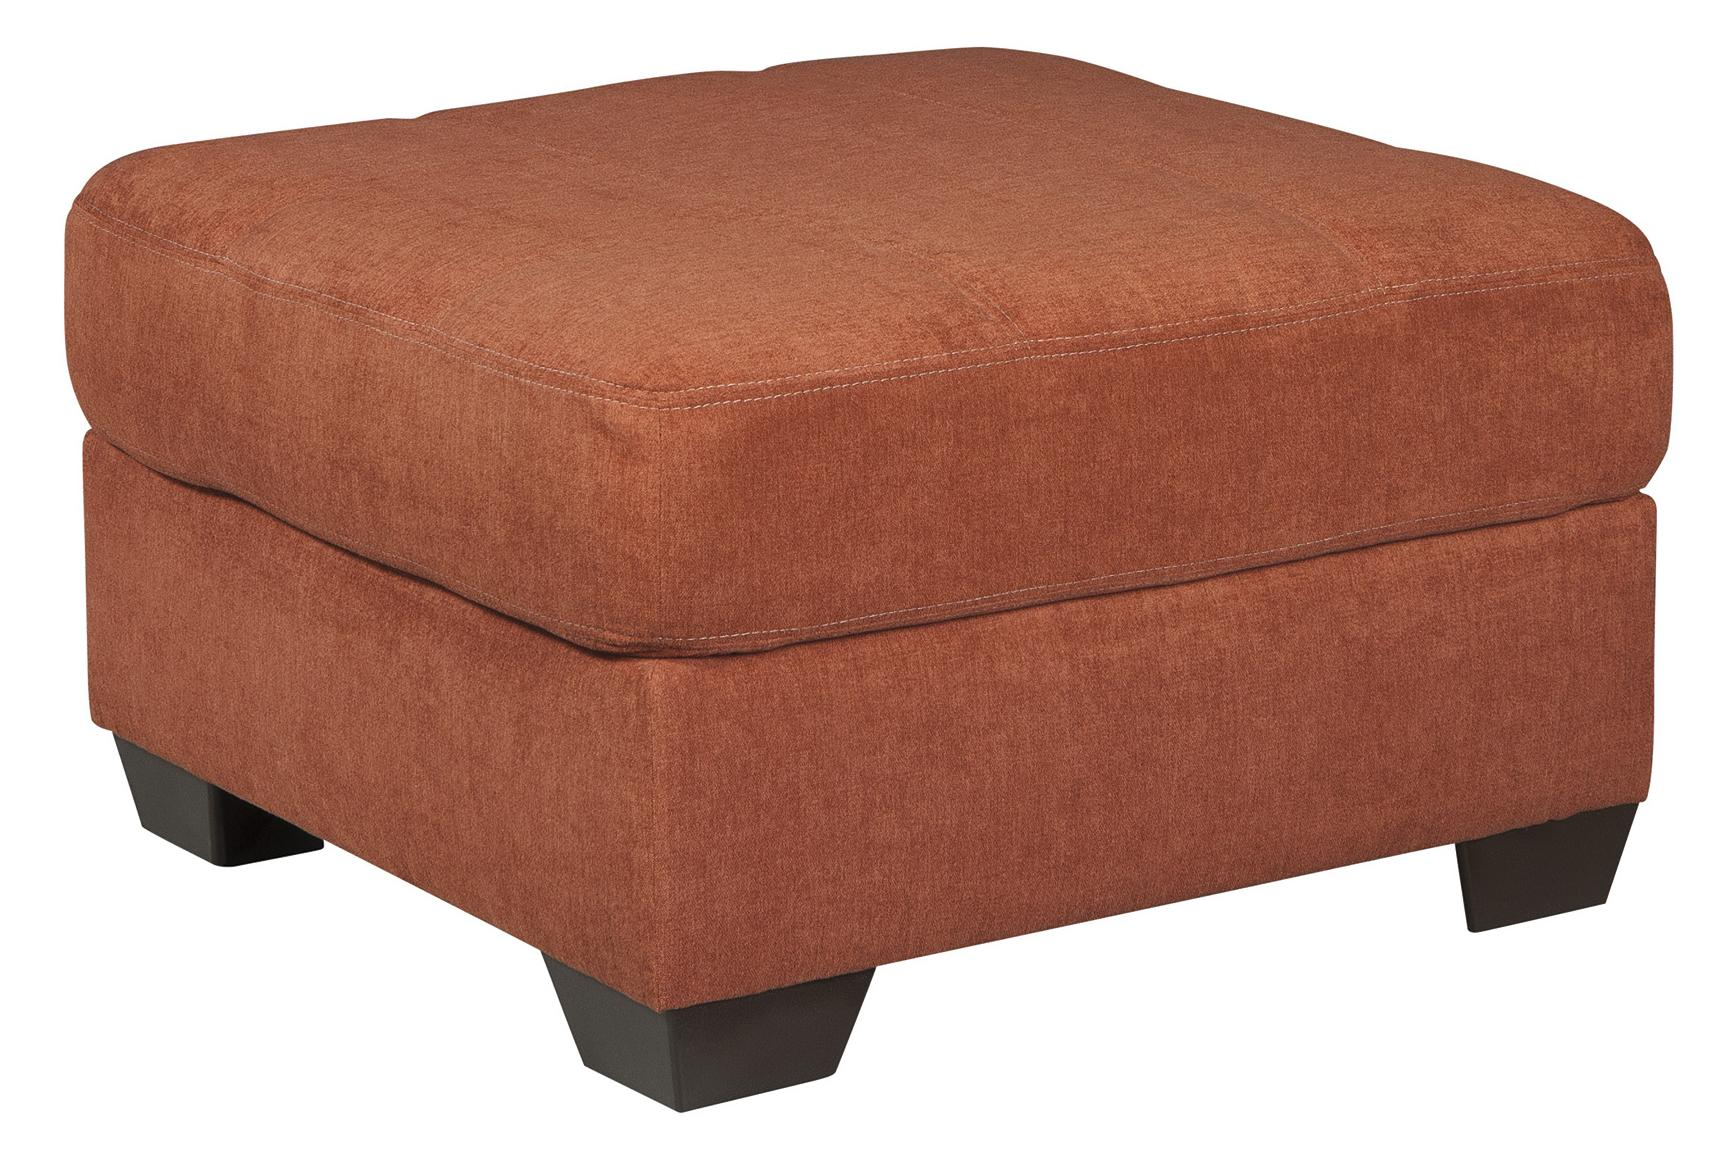 Benchcraft Delta City - Rust Oversized Accent Ottoman - Item Number: 1970108